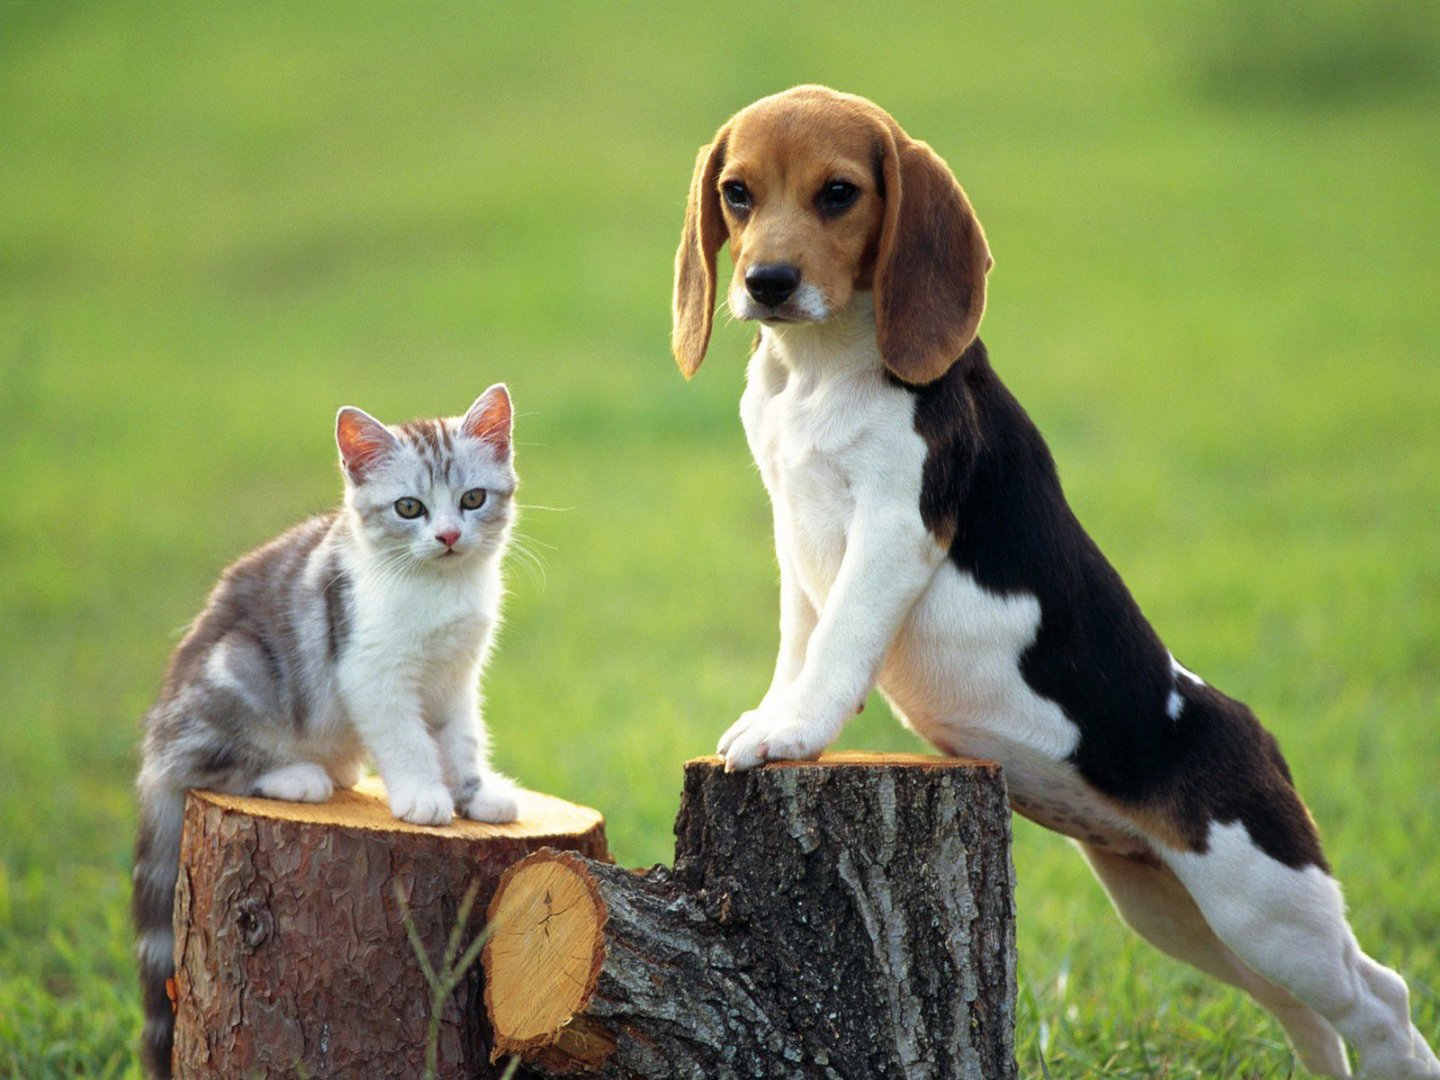 cats-and-dogs-friends-forever-wallpaper (2).jpg